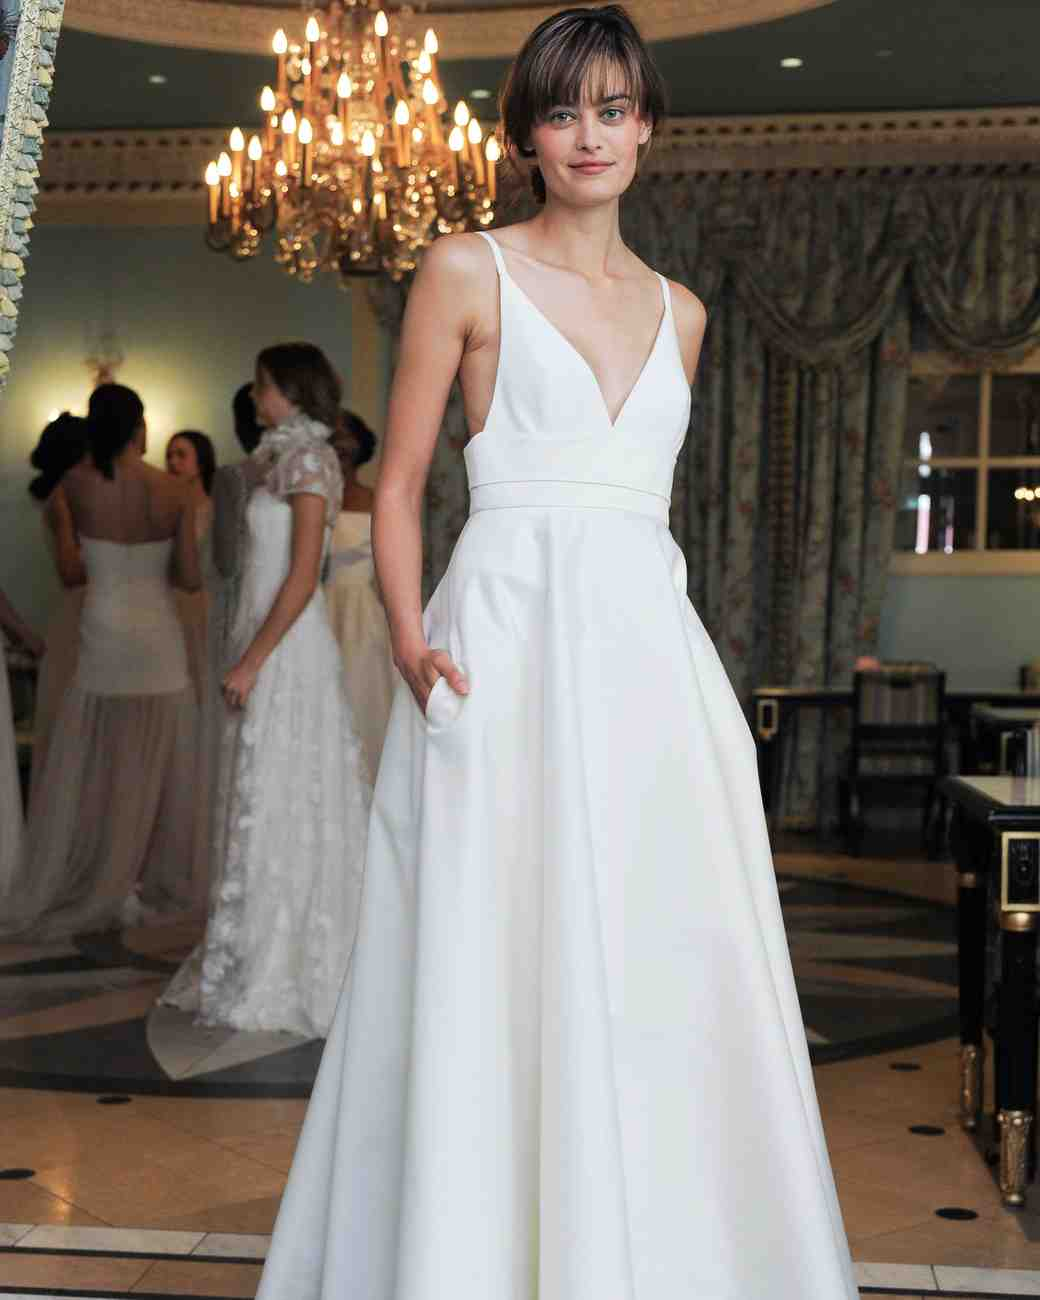 Simple Wedding Dresses That Are Just Plain Chic | Martha Stewart Weddings